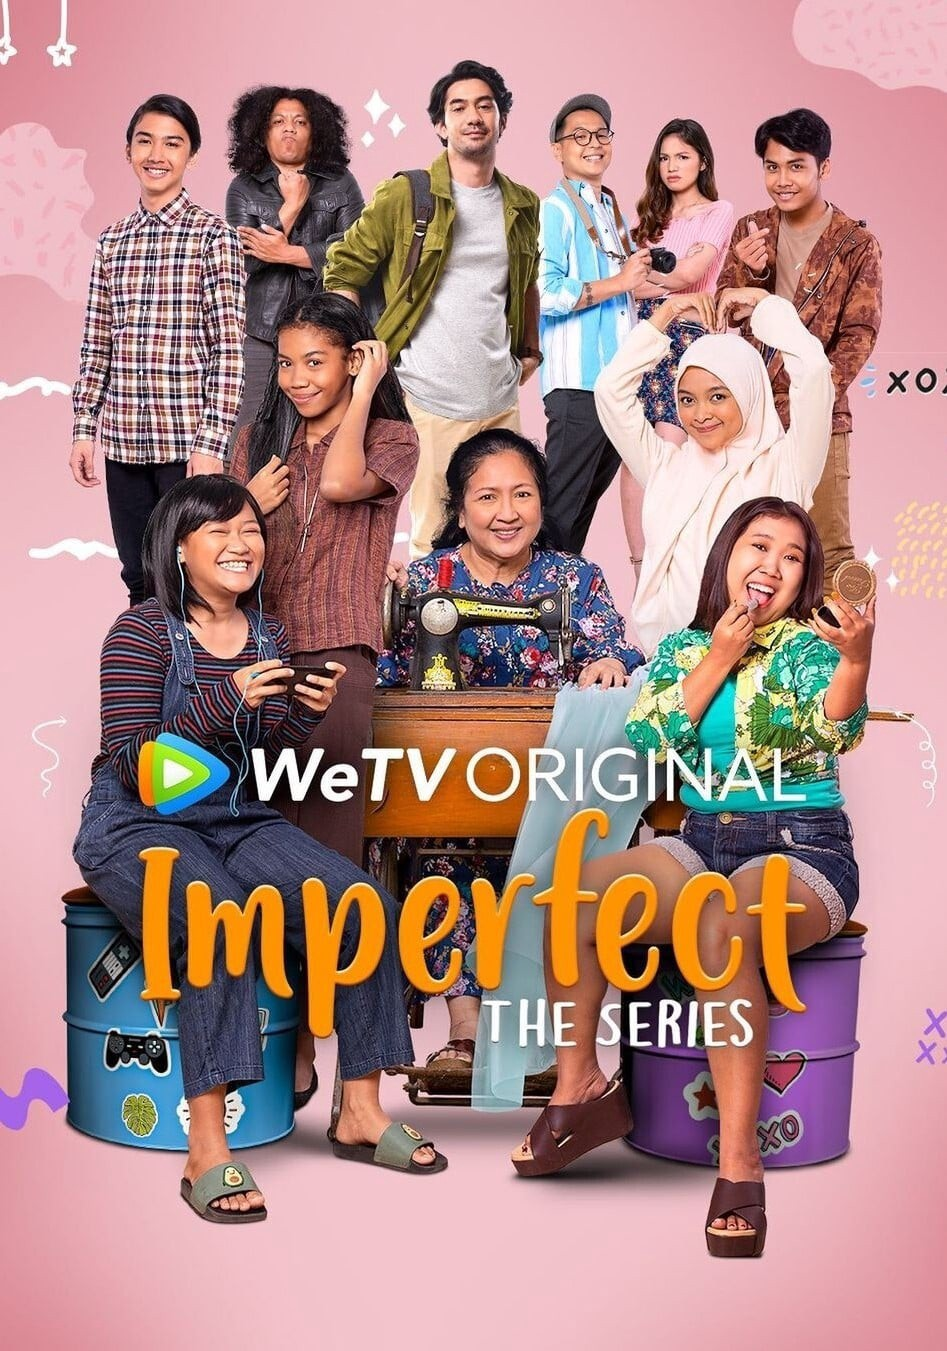 Ep 3 Imperfect The Series Н'®ð''𝒶𝓈𝑜𝓃 1 Episode 3 Engsub Drama On Wetv By Medflik Imperfect The Series Ep 3 Feb 2021 Medium